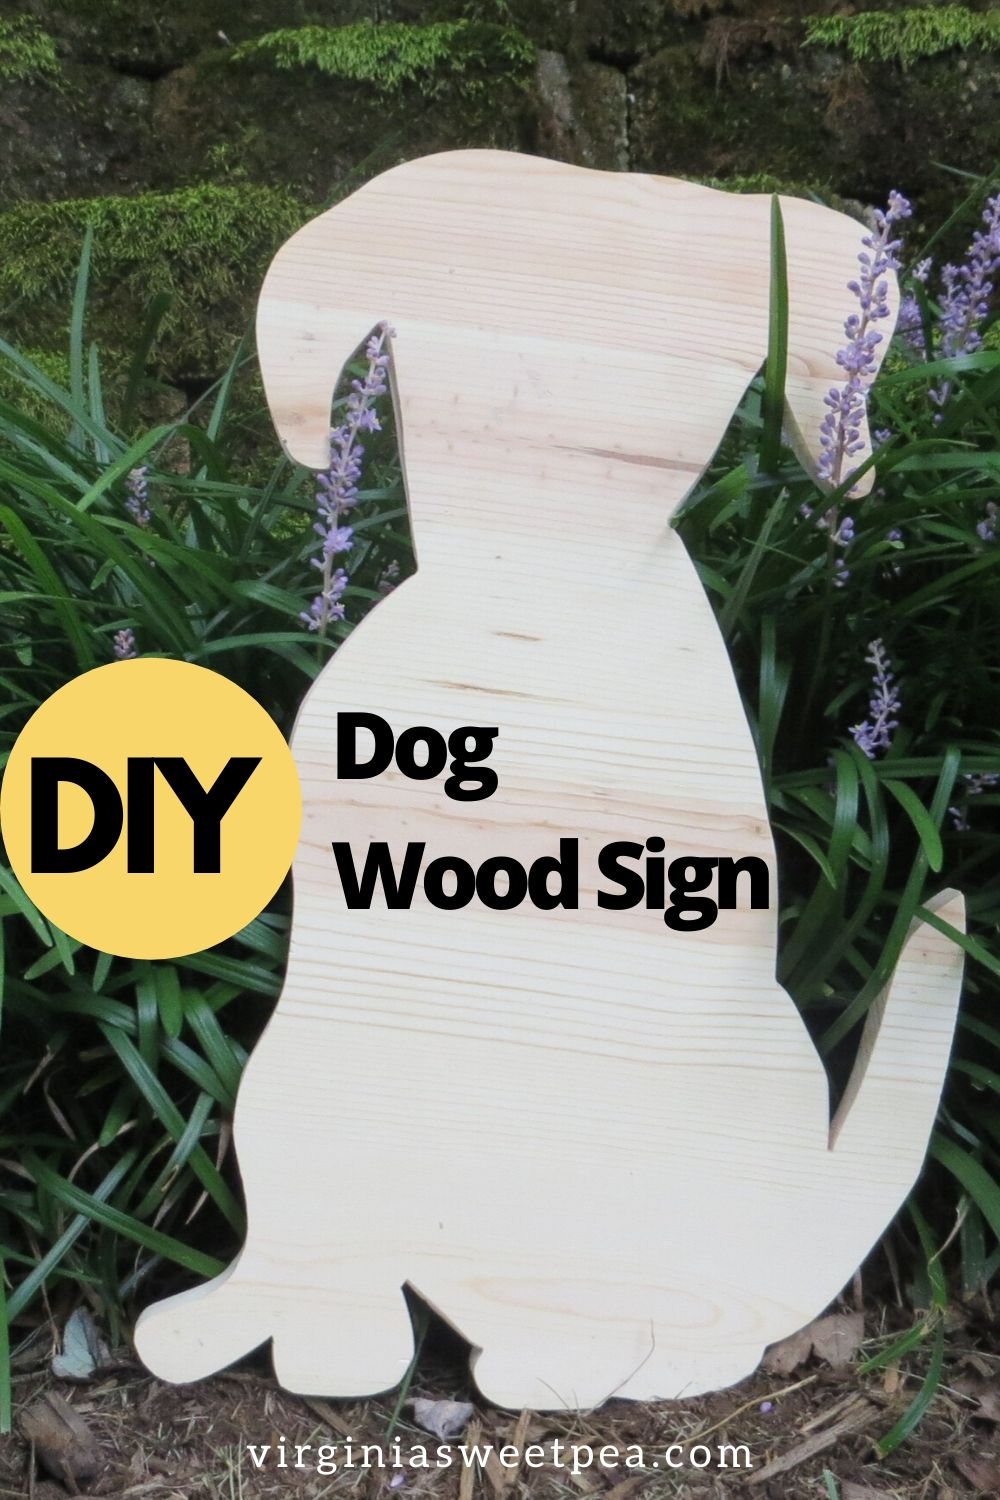 DIY Dog Wood Sign - Learn how to make a sign in the shape of a dog.  Stain or paint your dog and then hang for unique home decor.   via @spaula